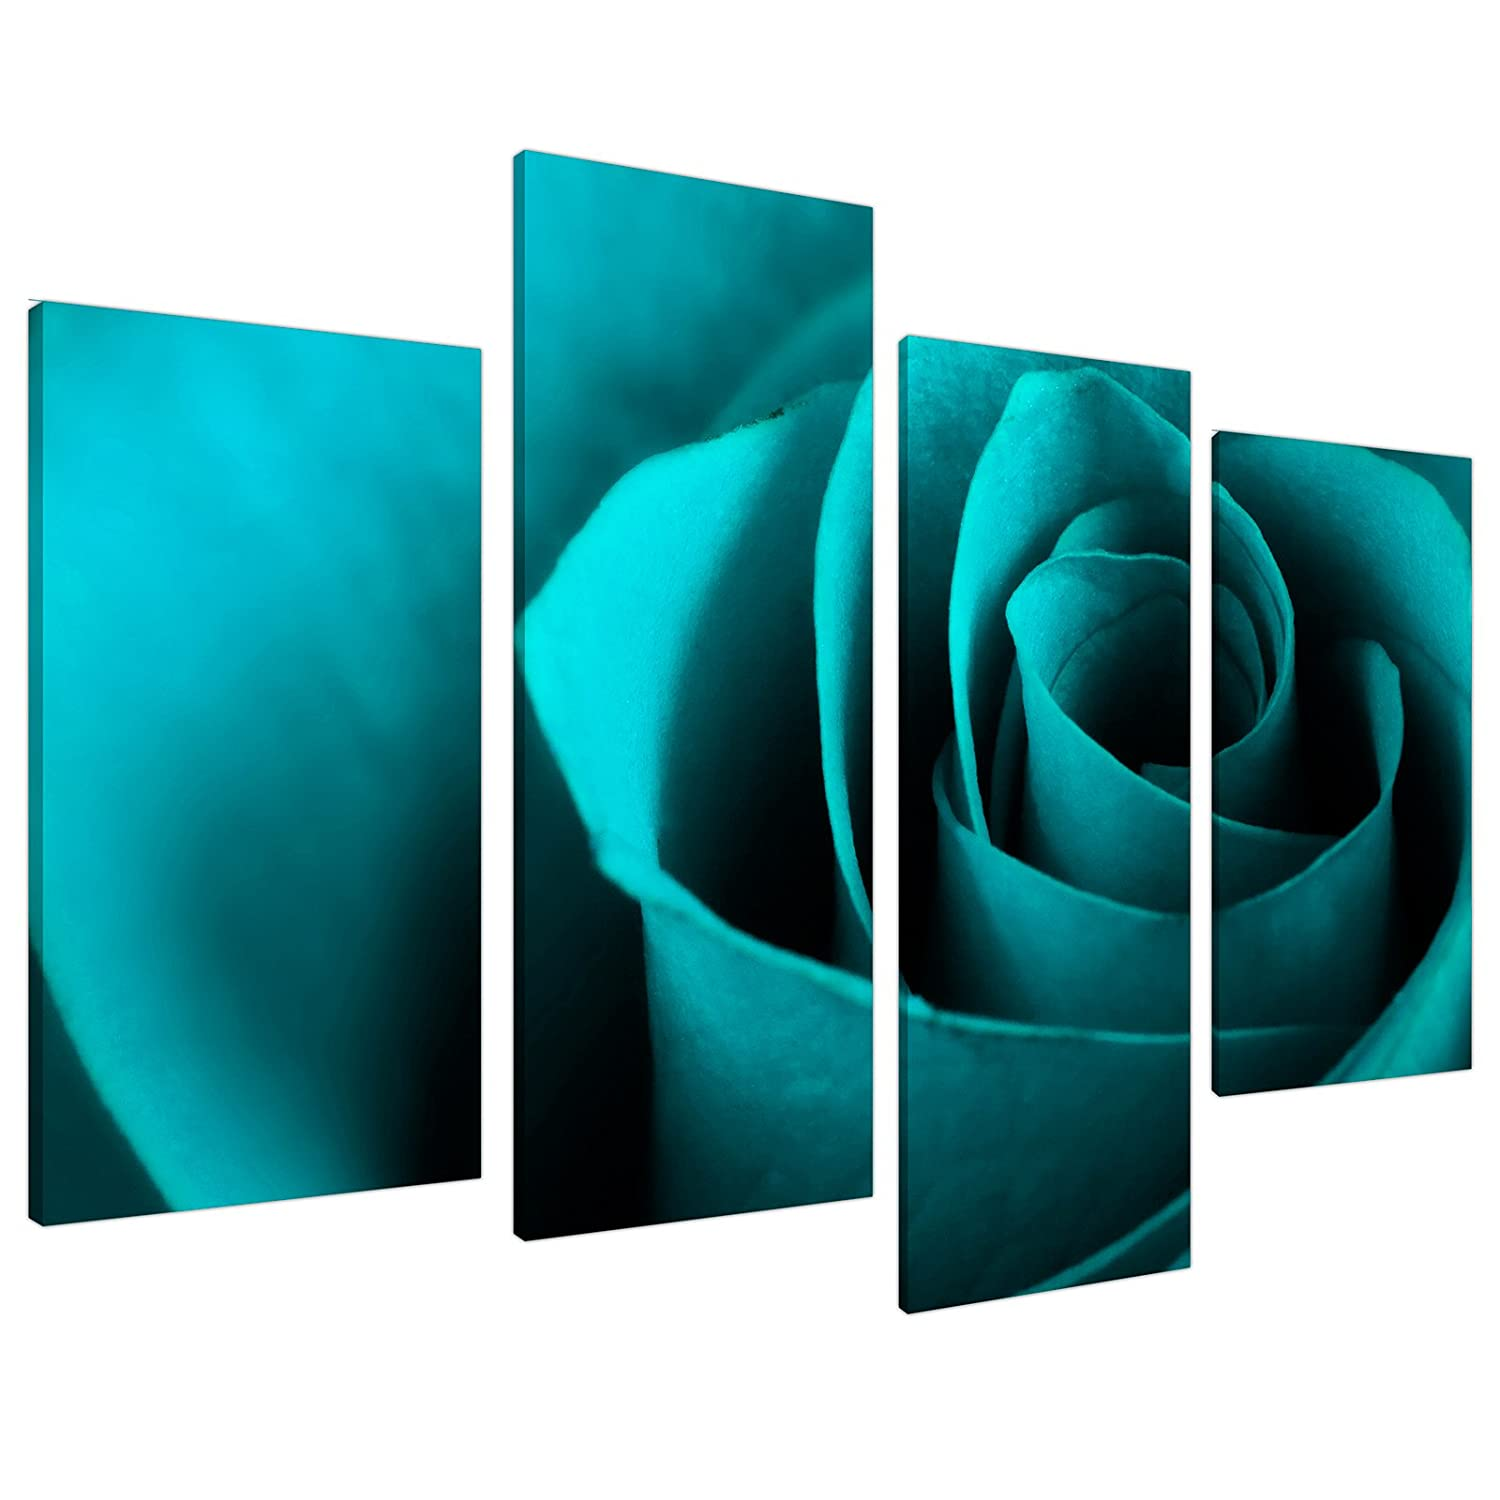 Superior Large Teal Turquoise Floral Canvas Wall Art Pictures XL Prints 4109:  Amazon.co.uk: Kitchen U0026 Home